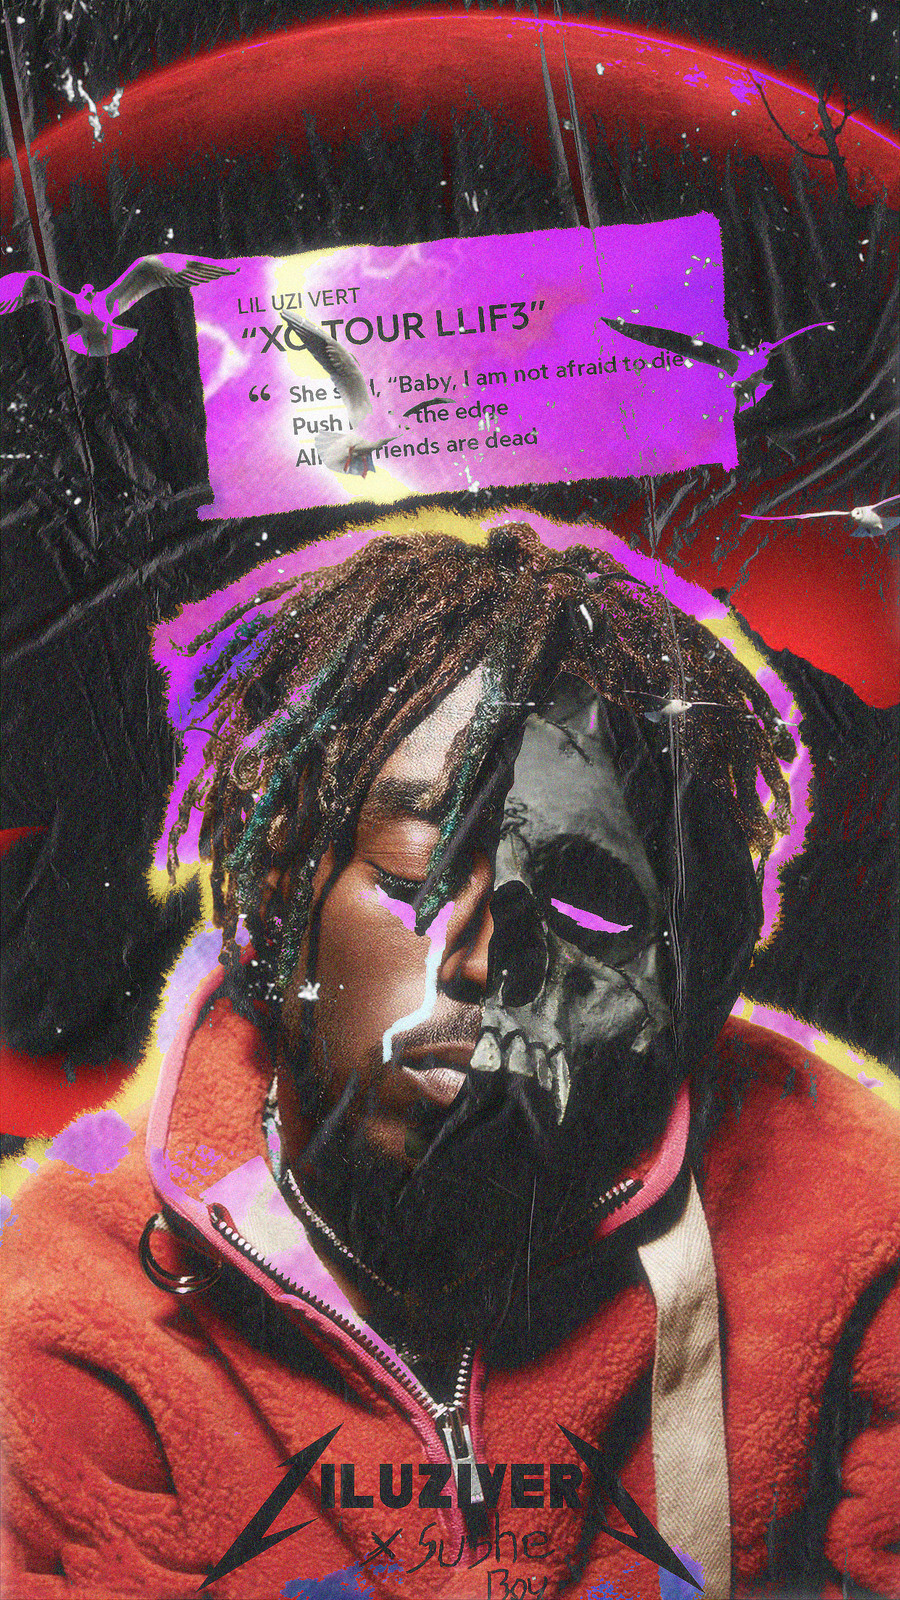 Die Today Lil Uzi 900x1600 Wallpaper Teahub Io See lil uzi vert pictures, photo shoots, and listen online to the latest music. die today lil uzi 900x1600 wallpaper